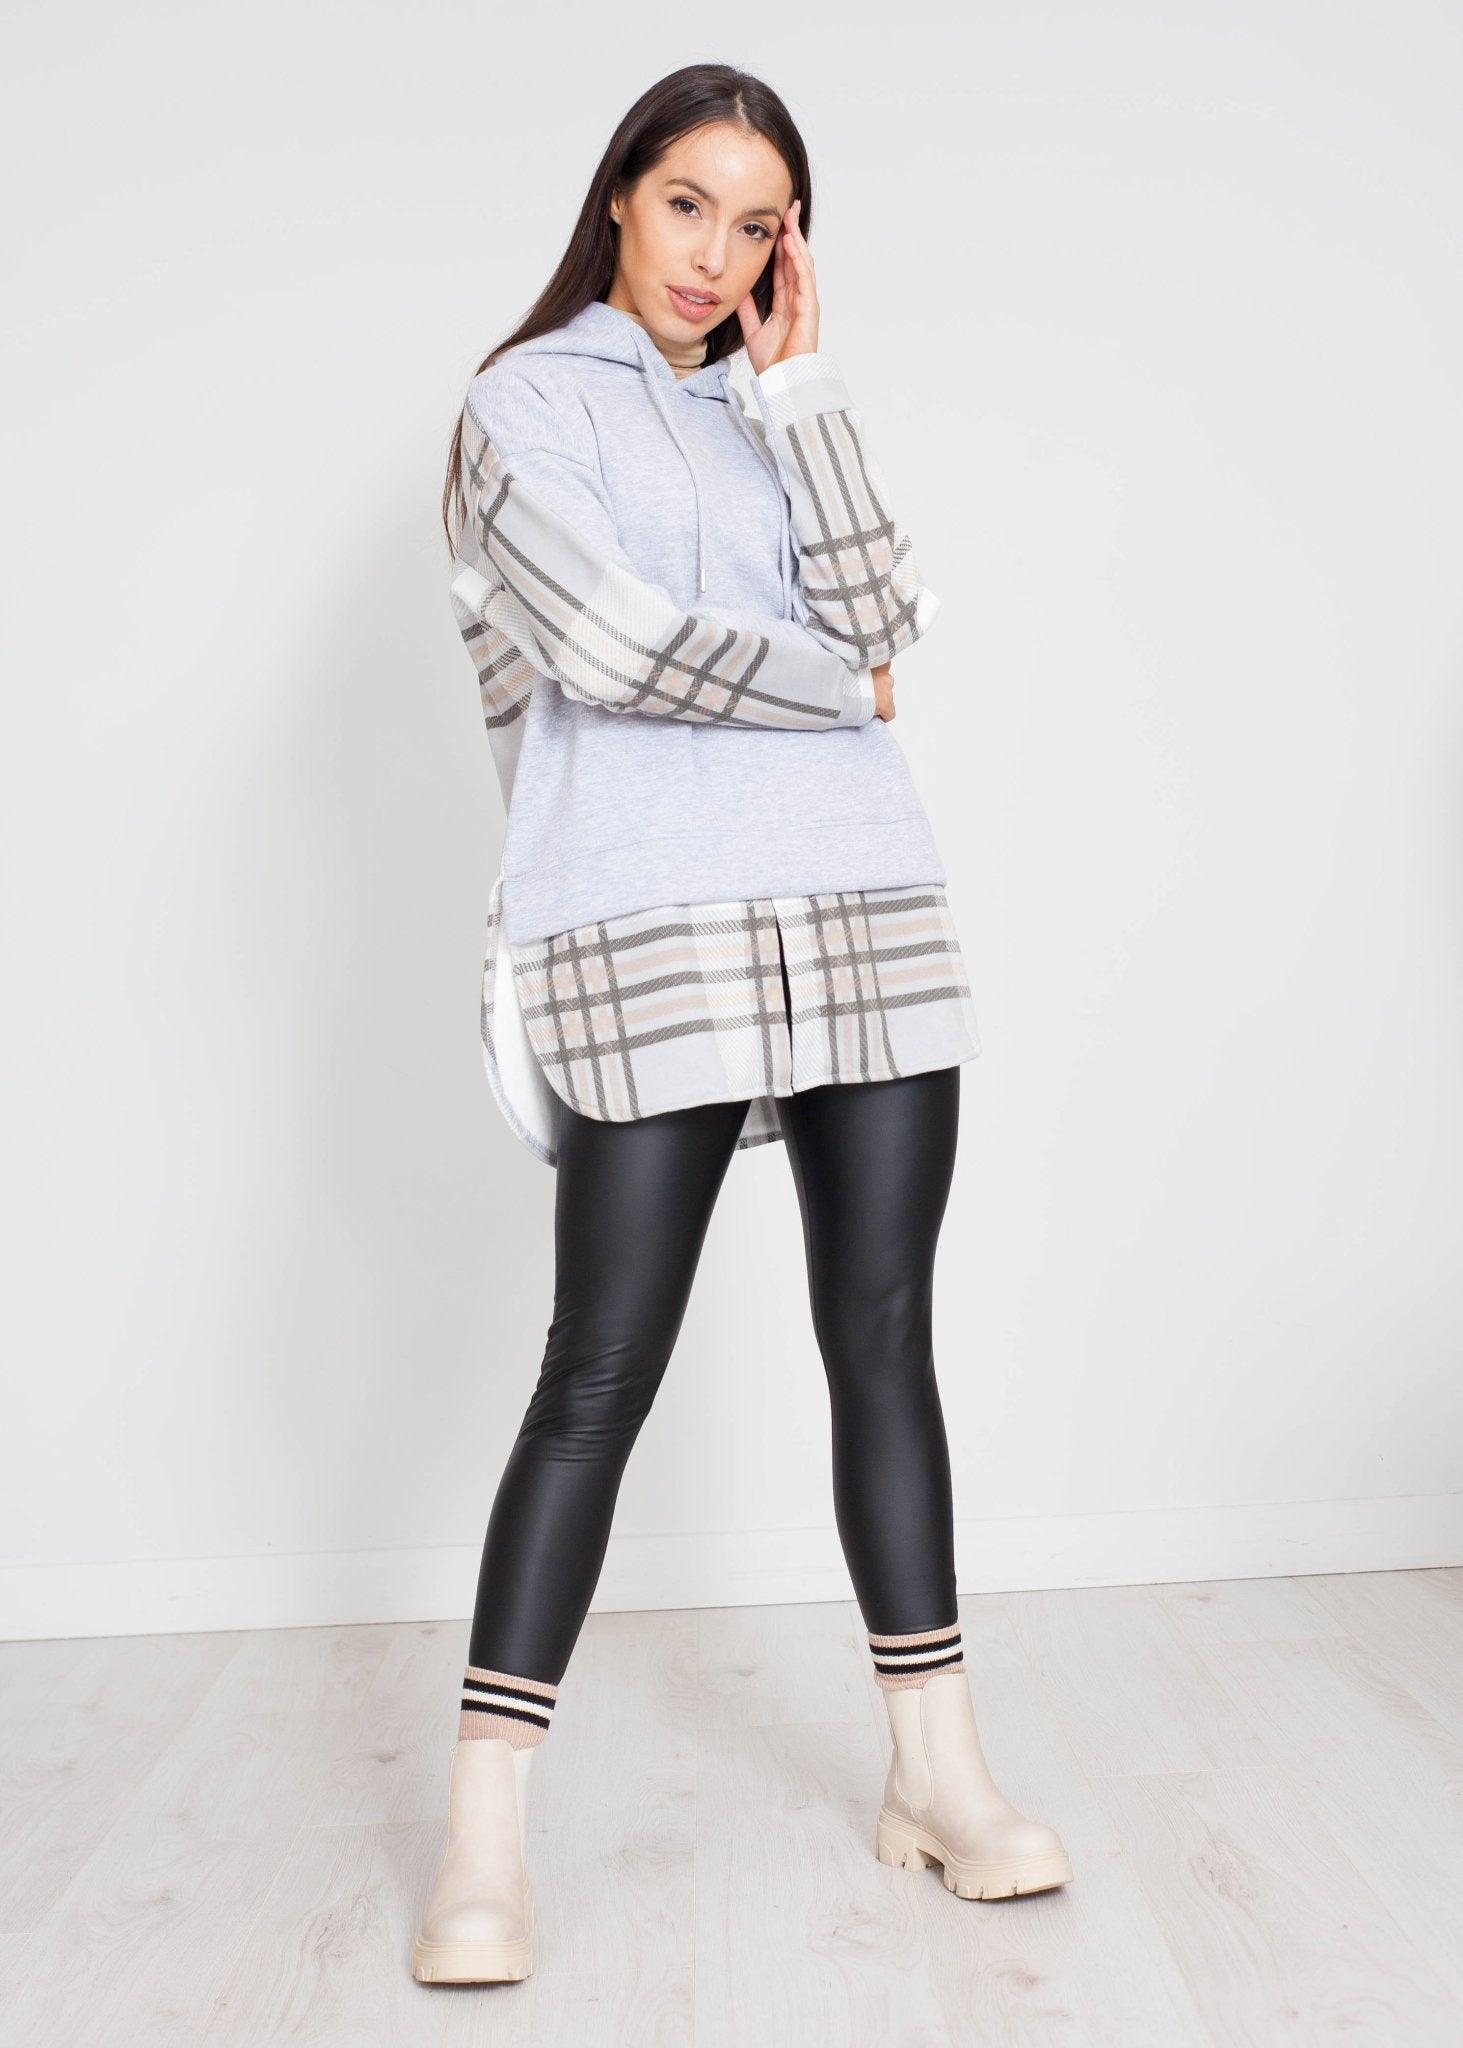 Stella Hoodie In Grey Check - The Walk in Wardrobe